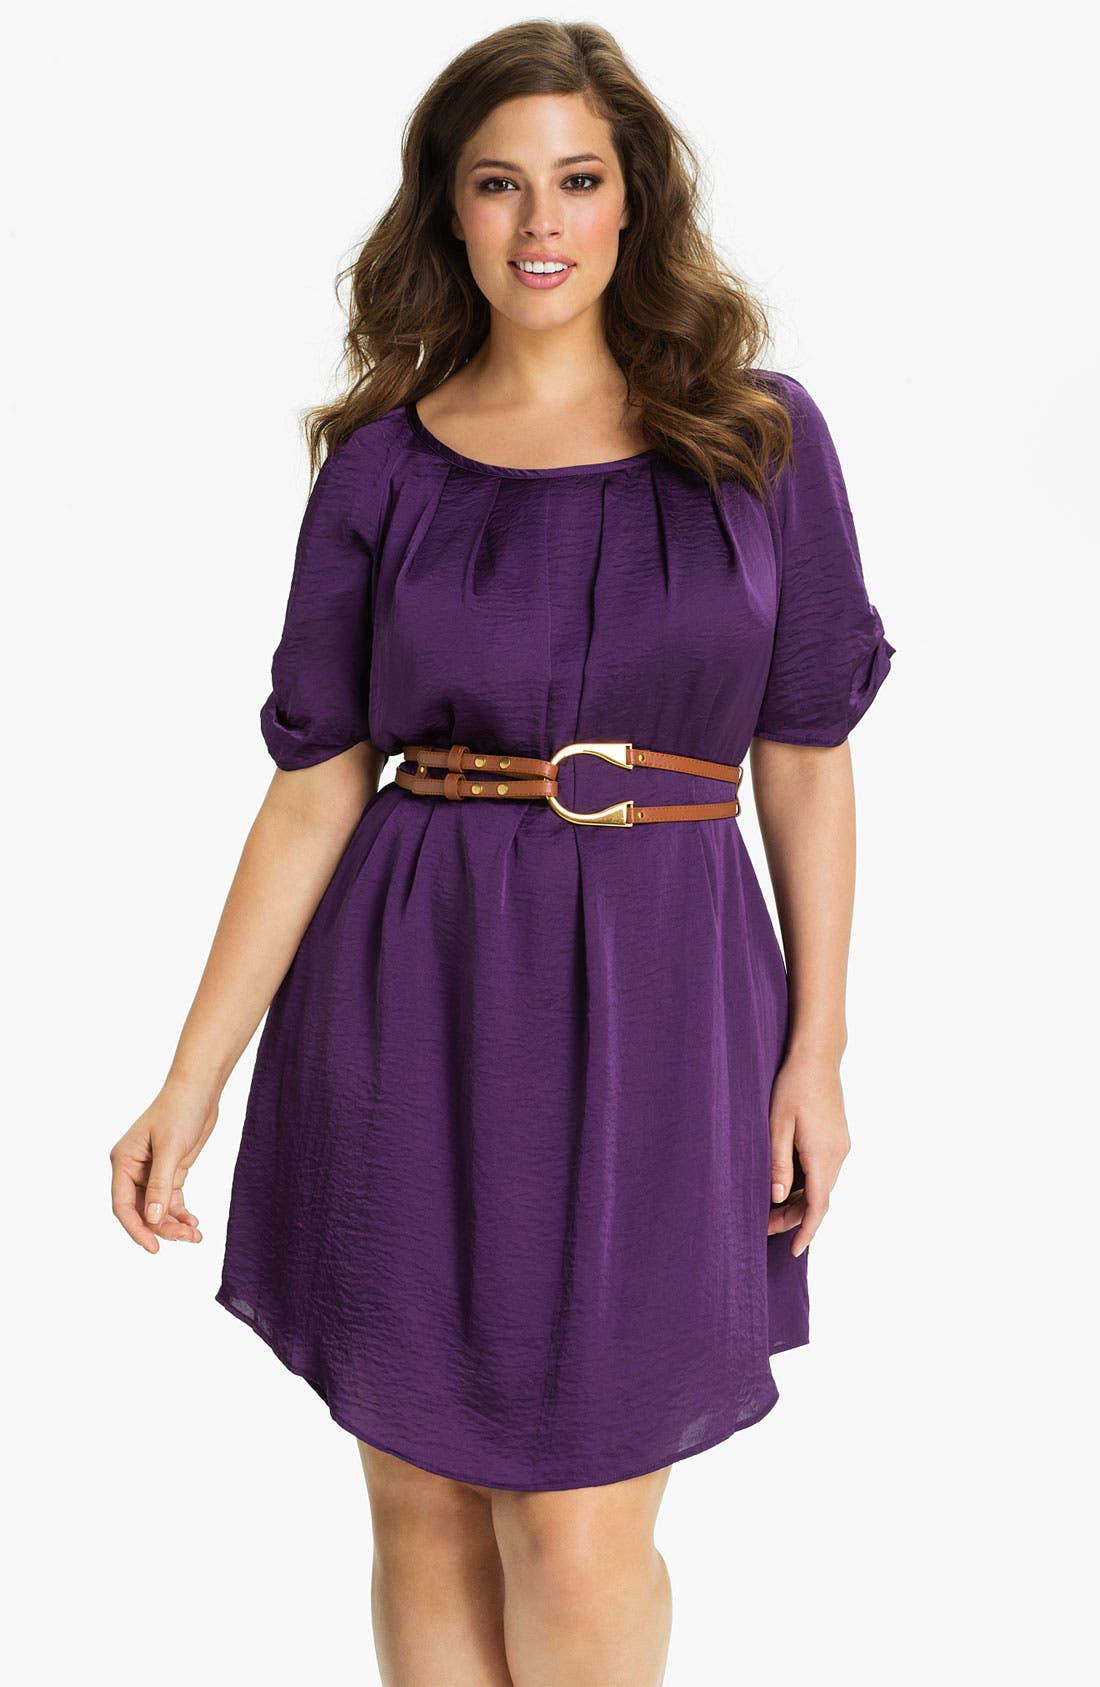 Alternate Image 1 Selected - Jessica Simpson Belted Scoop Neck Dress (Plus)